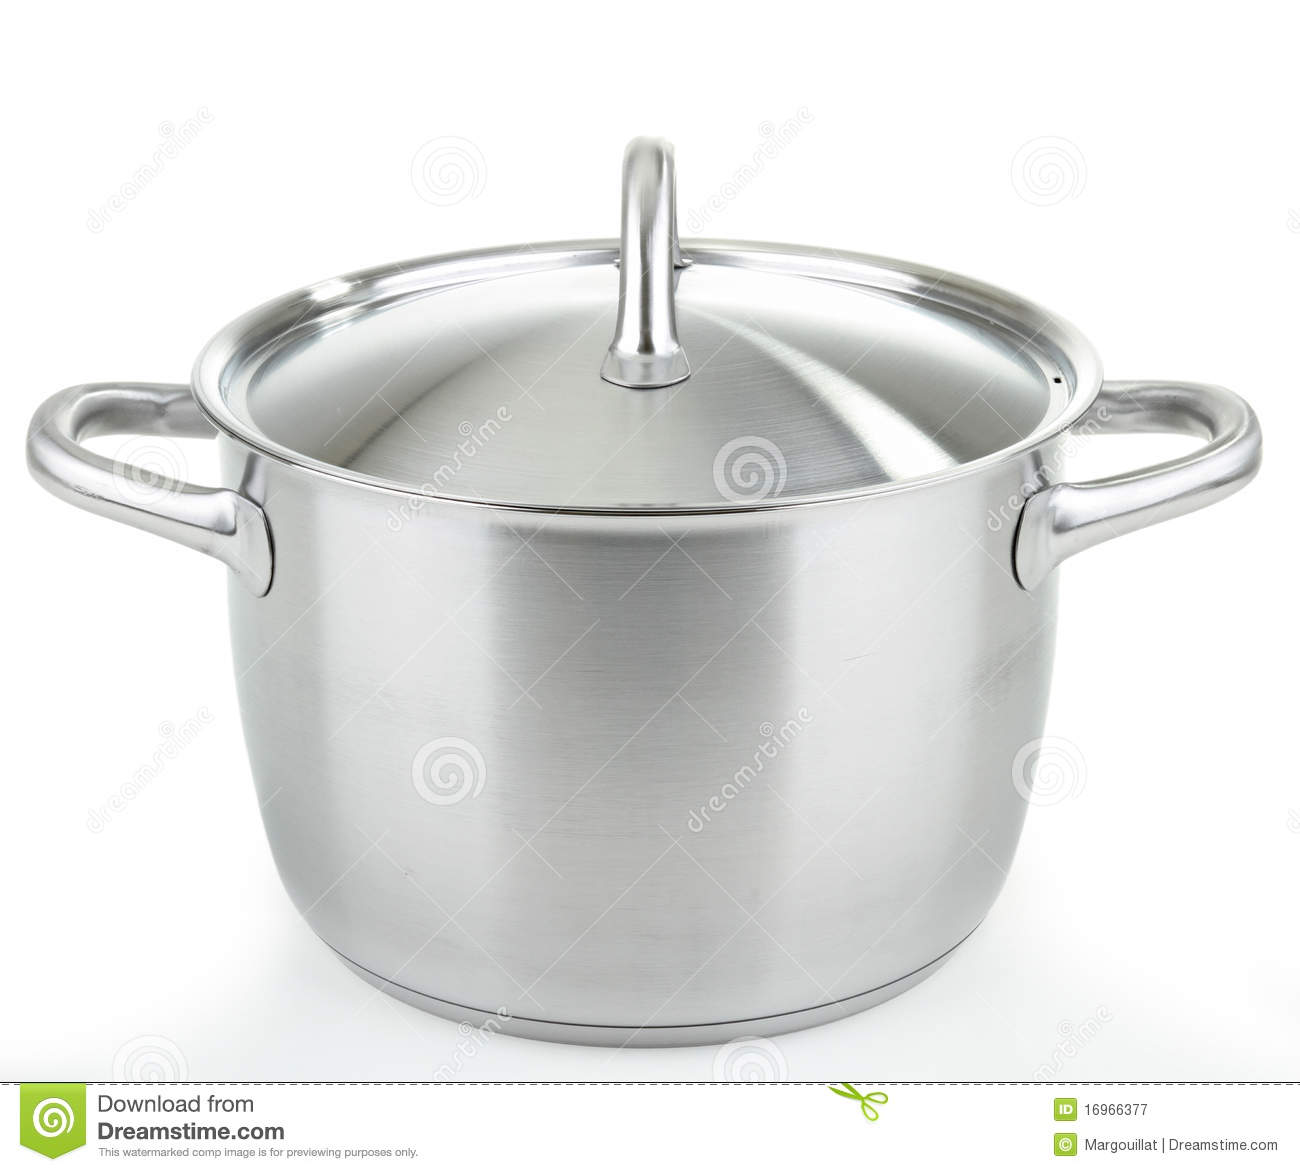 Cooking Pot Cooking Pot Royalty Free Stock Photography Image 16966377